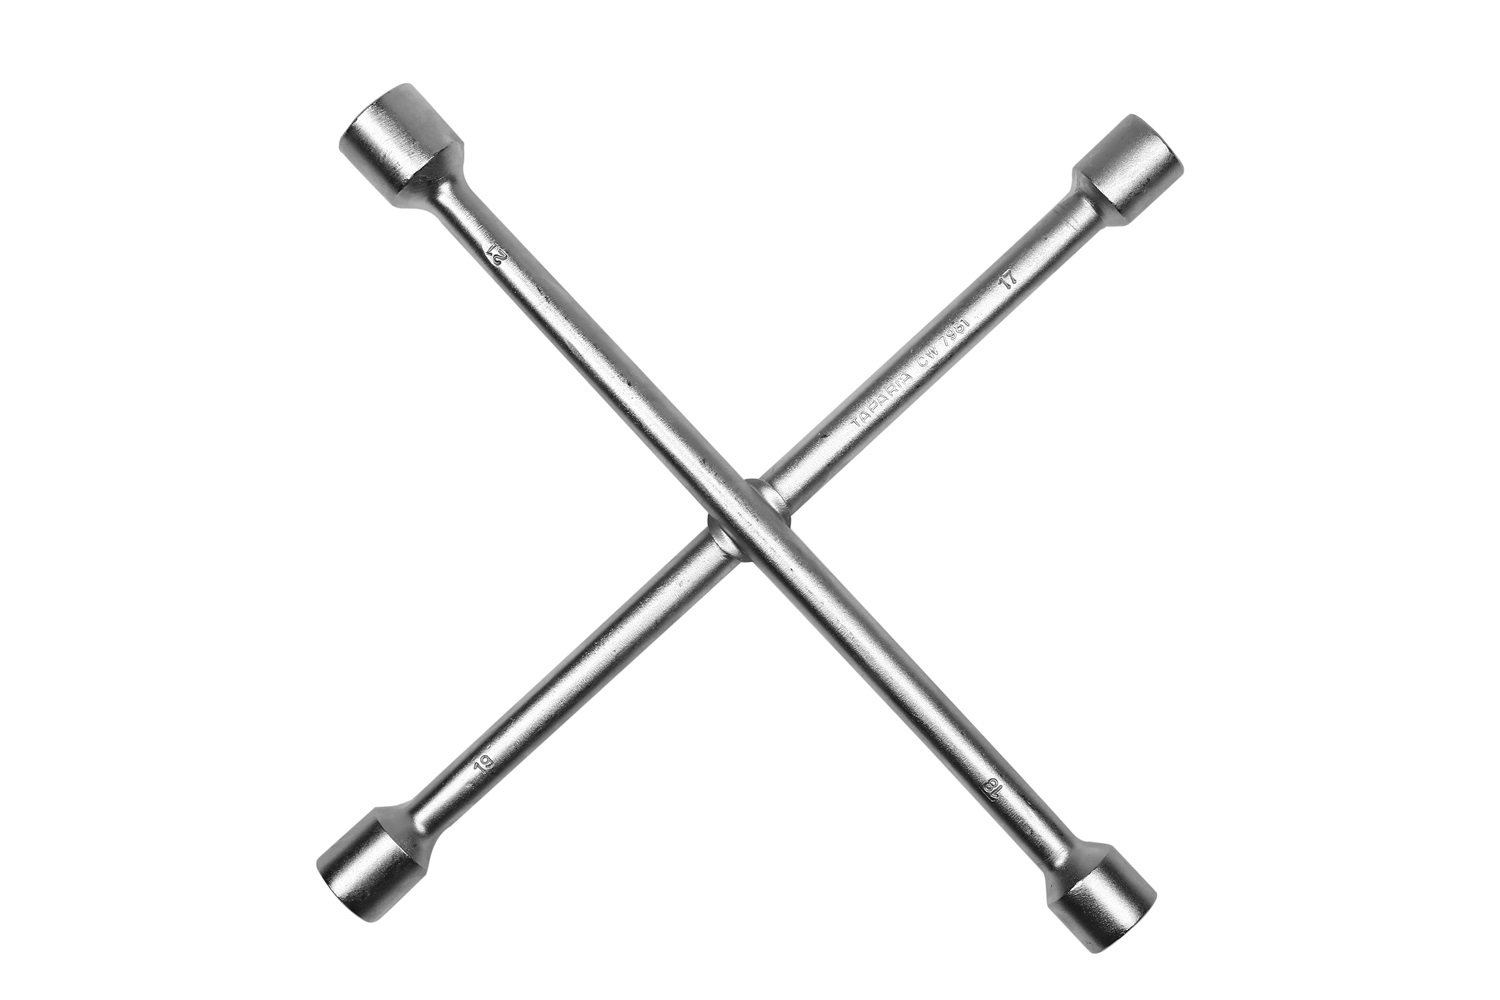 Taparia CW7981 Steel (17 x 19 mm, 18 x 21 mm) Cross Rim Wrench (Silver) product image